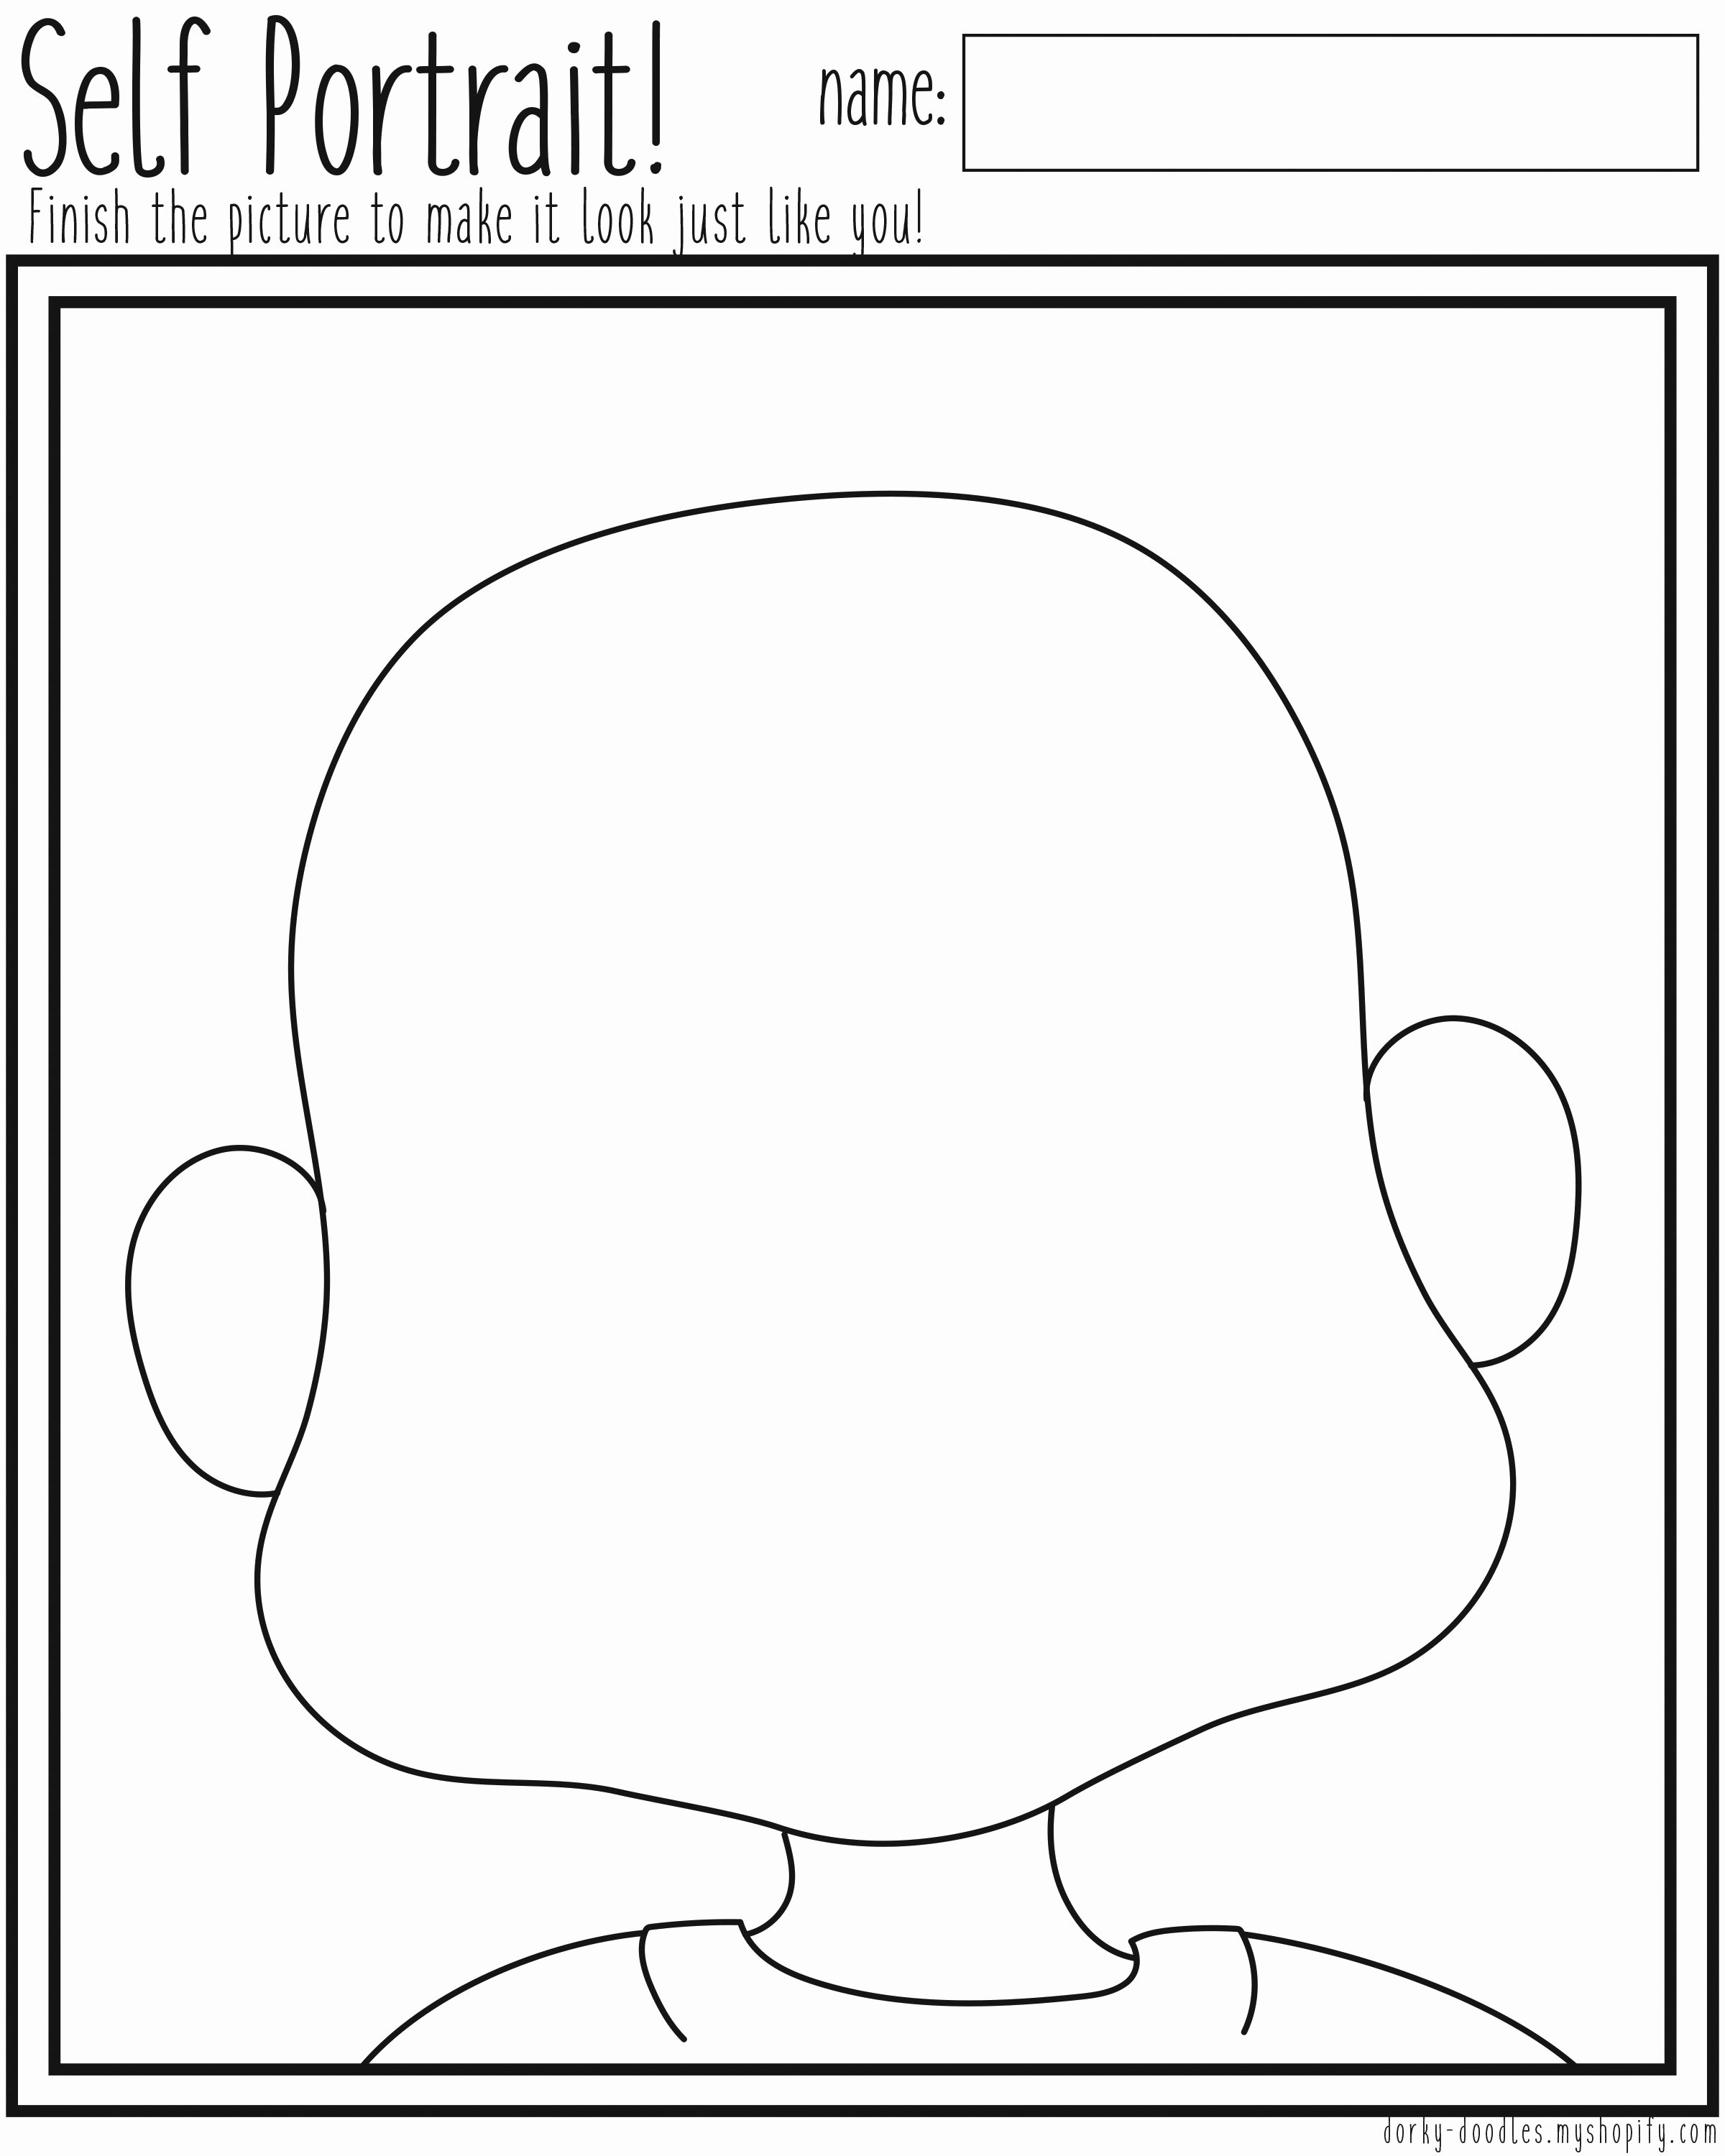 Self Portrait Worksheet Kidz Activities